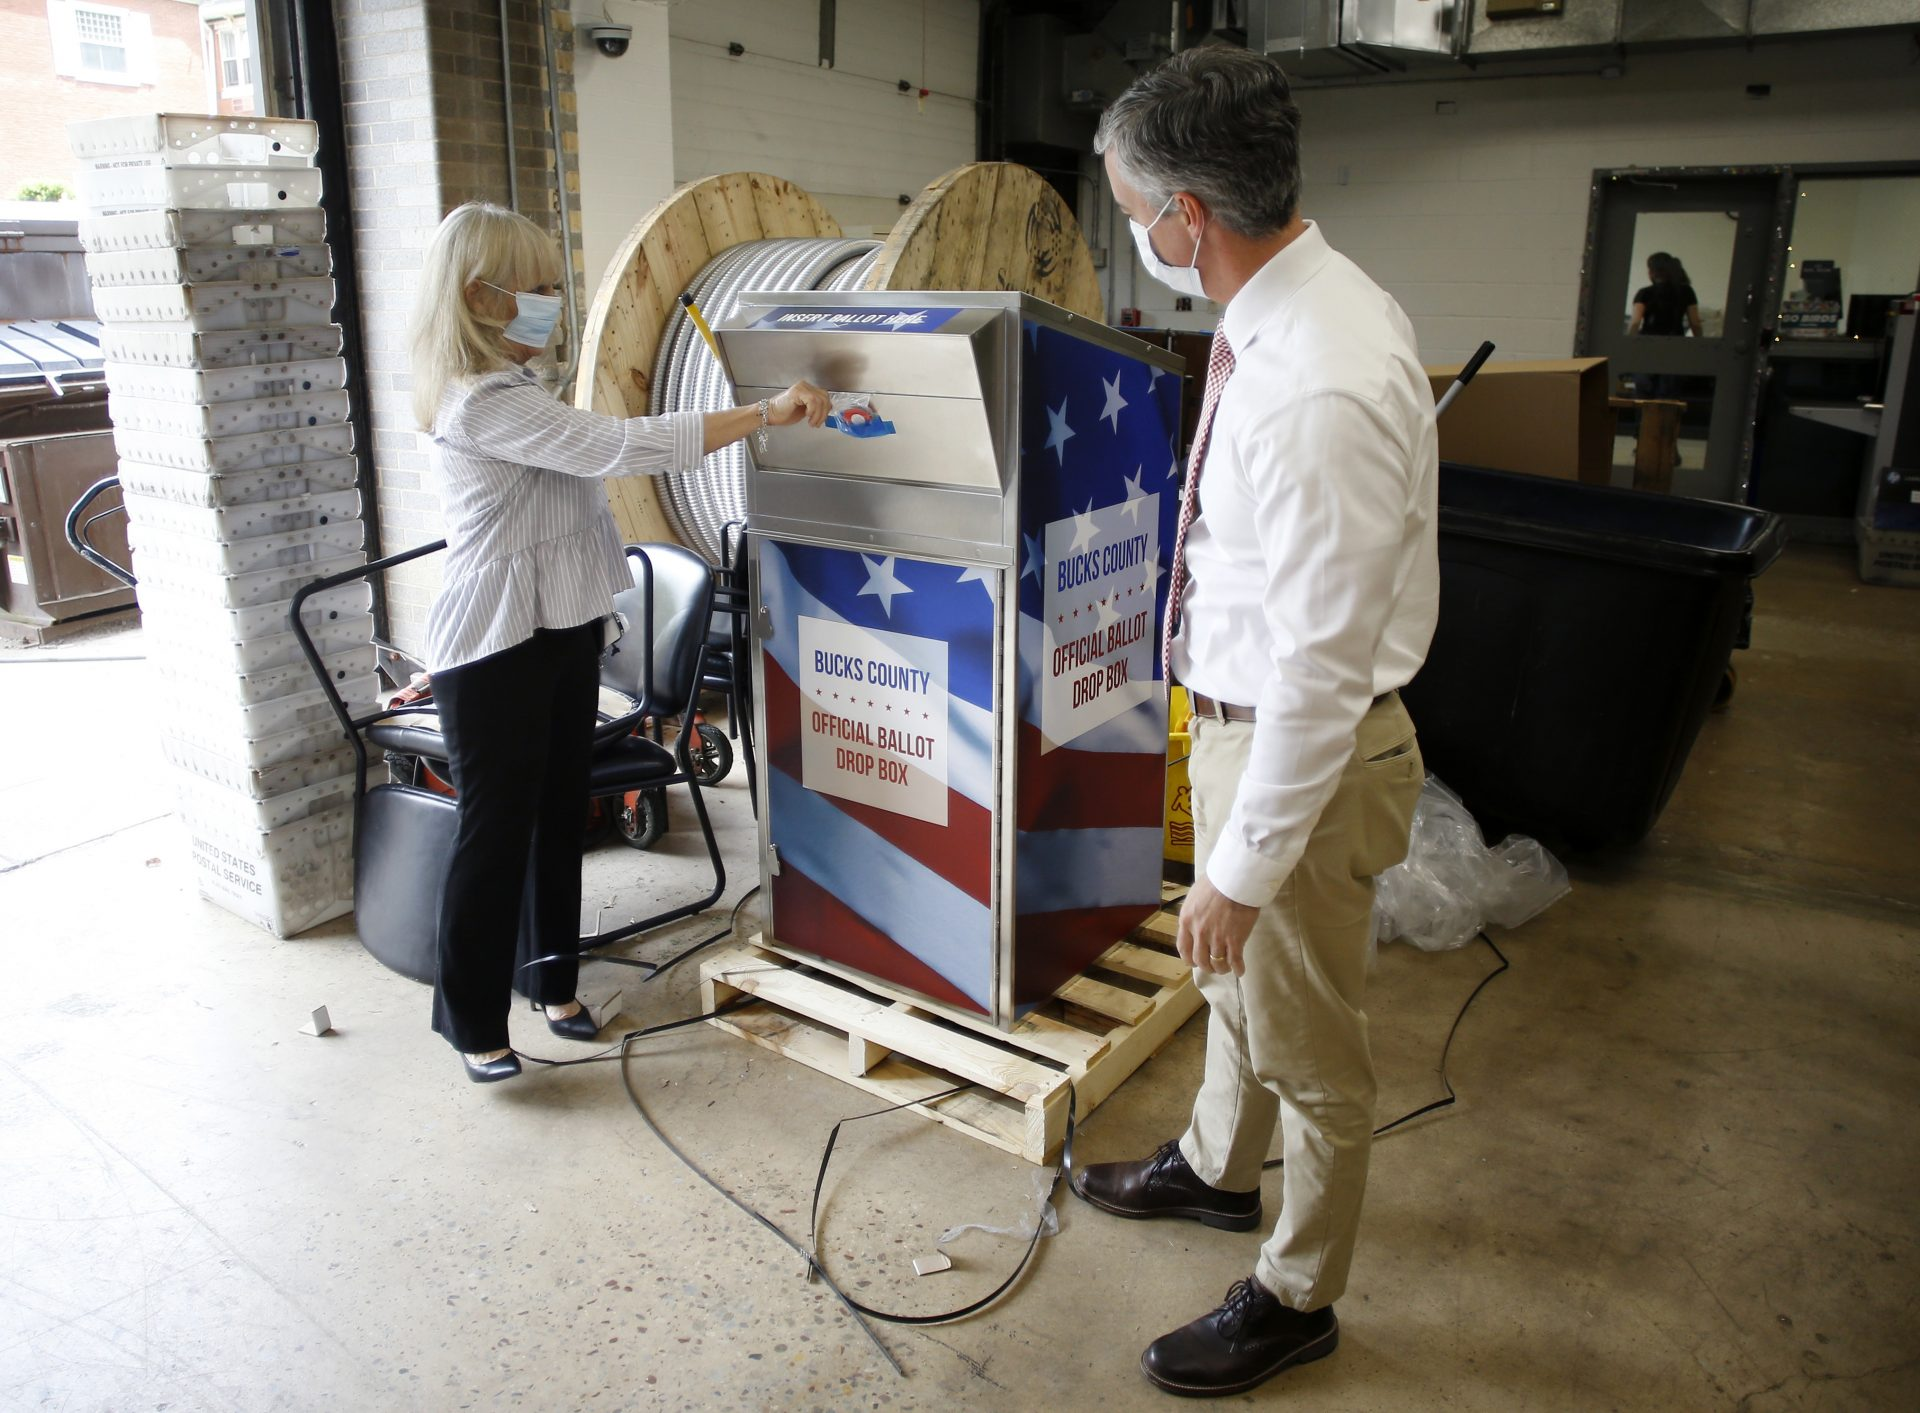 FILE PHOTO: In this May 27, 2020, photo, Bucks County commissioners Diane Ellis-Marseglia, left, and Robert Harvie unpack a new ballot drop box at the county's administration building prior to the primary election in Doylestown, Pa.